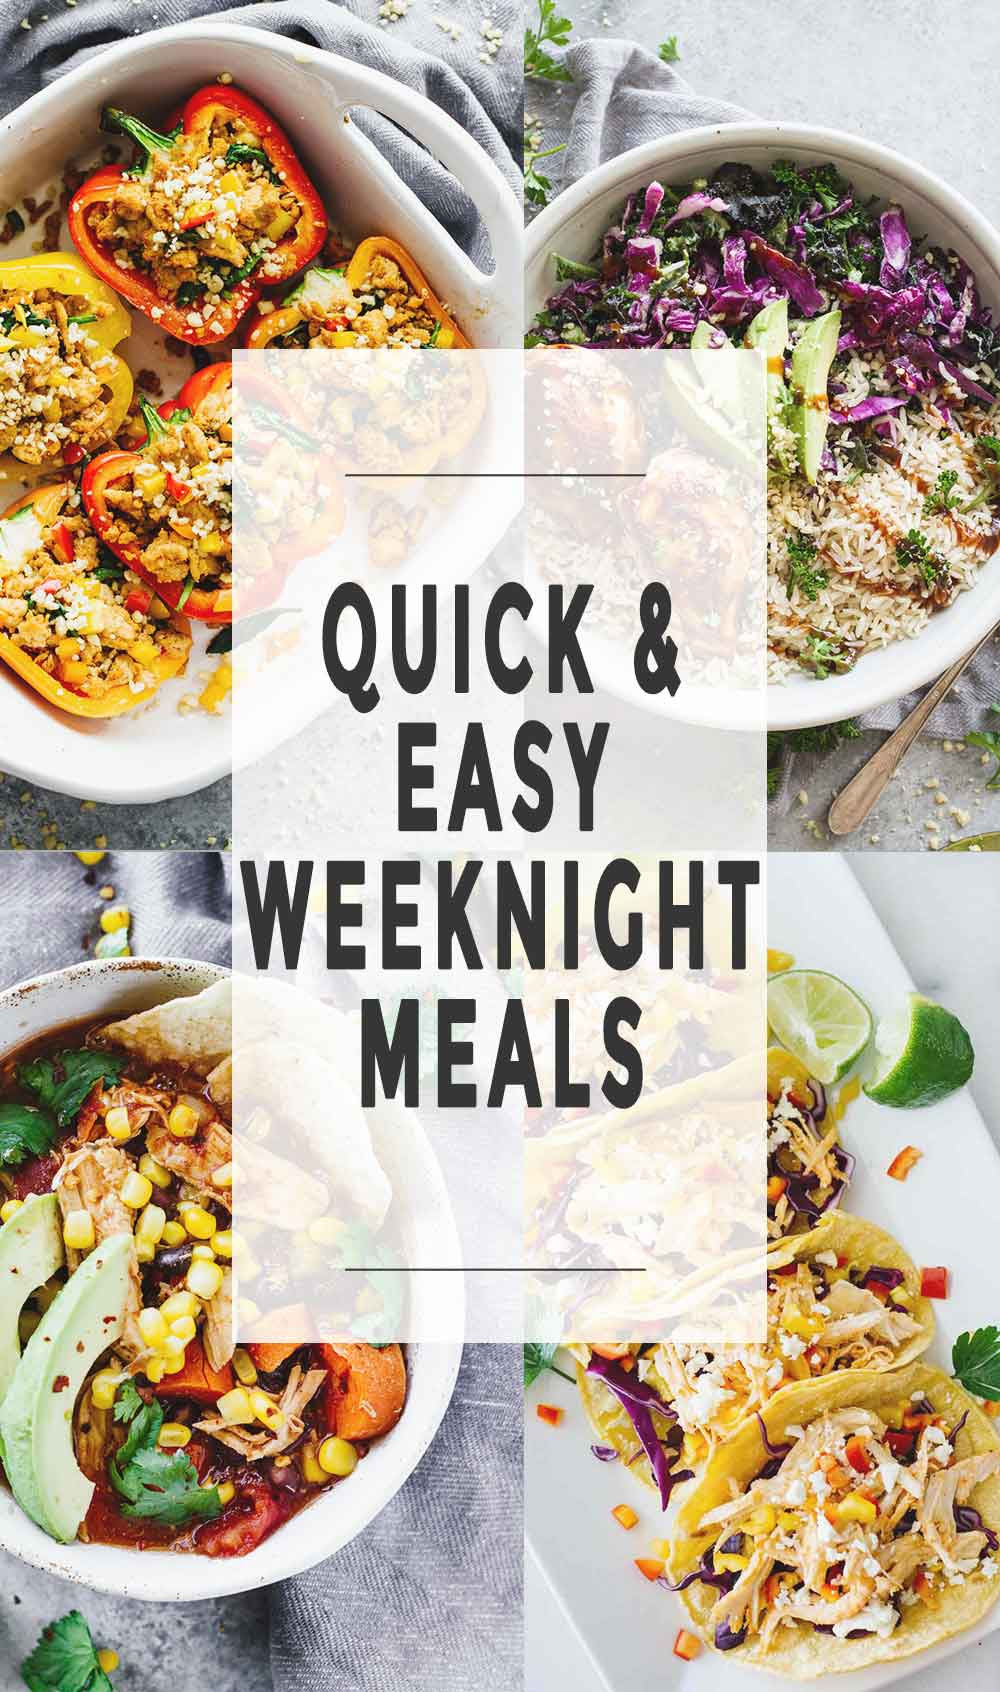 Healthy Weekday Lunches  Quick & Easy Weeknight Meals Jar Lemons